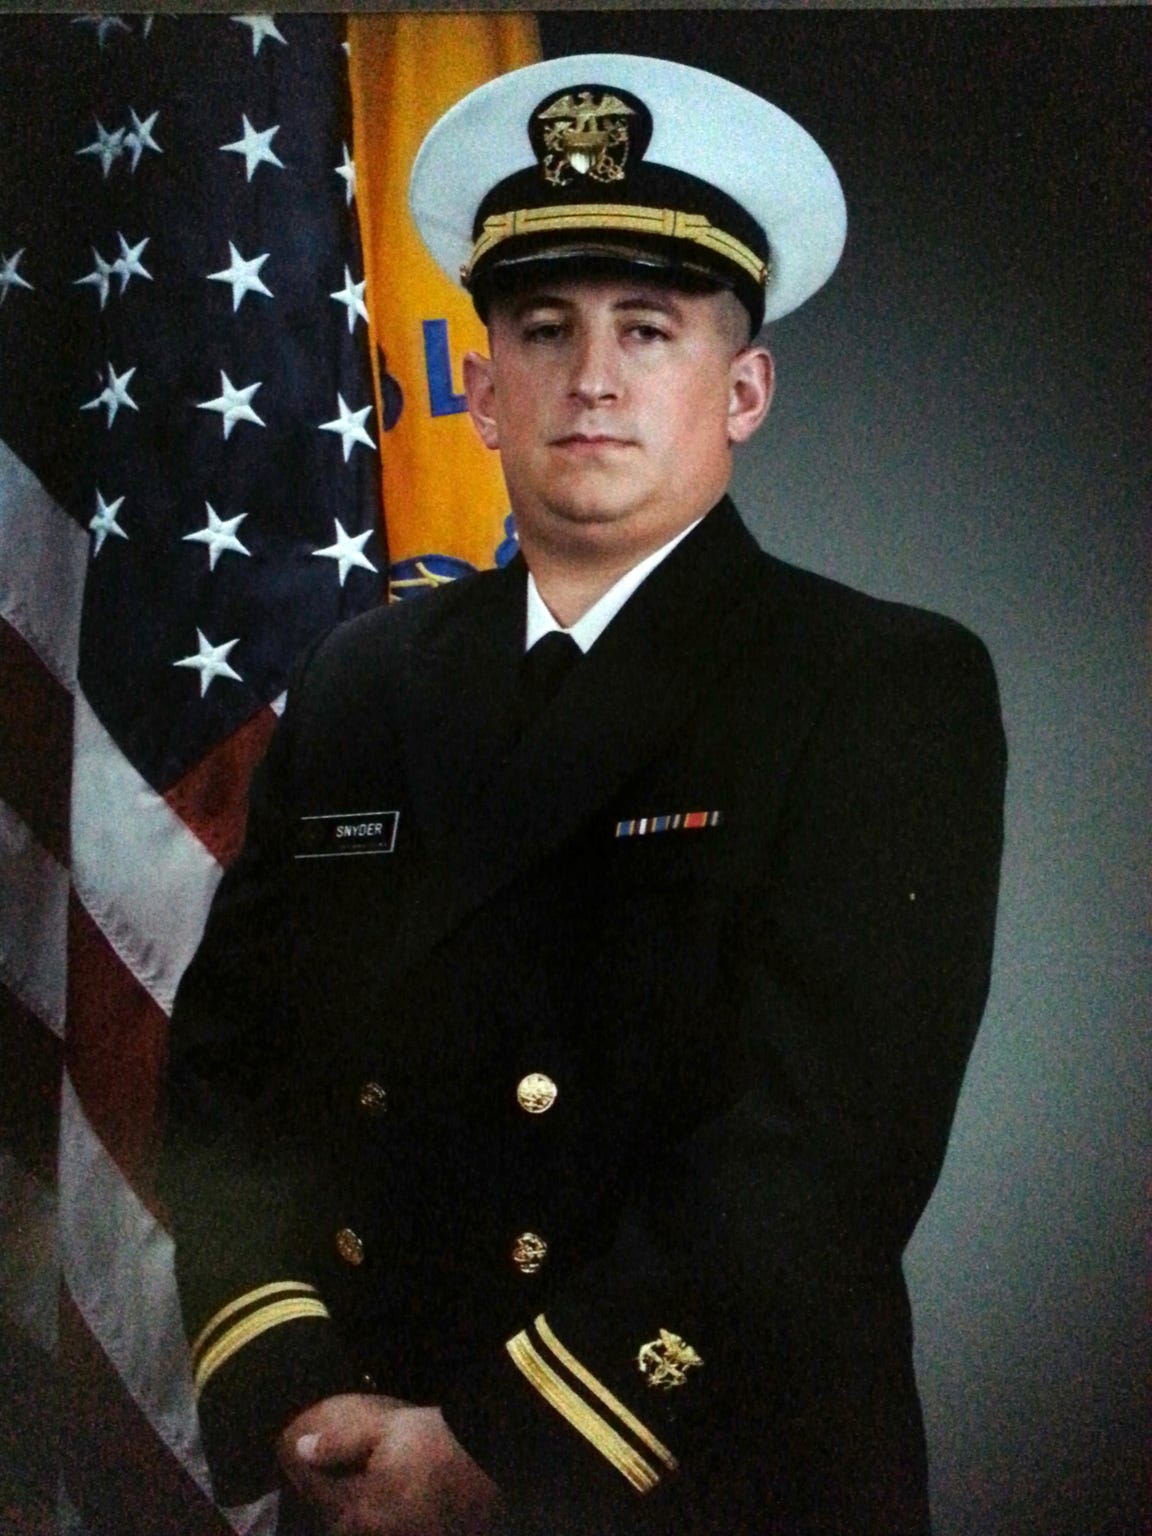 USPHS Lt. Chris Snyder